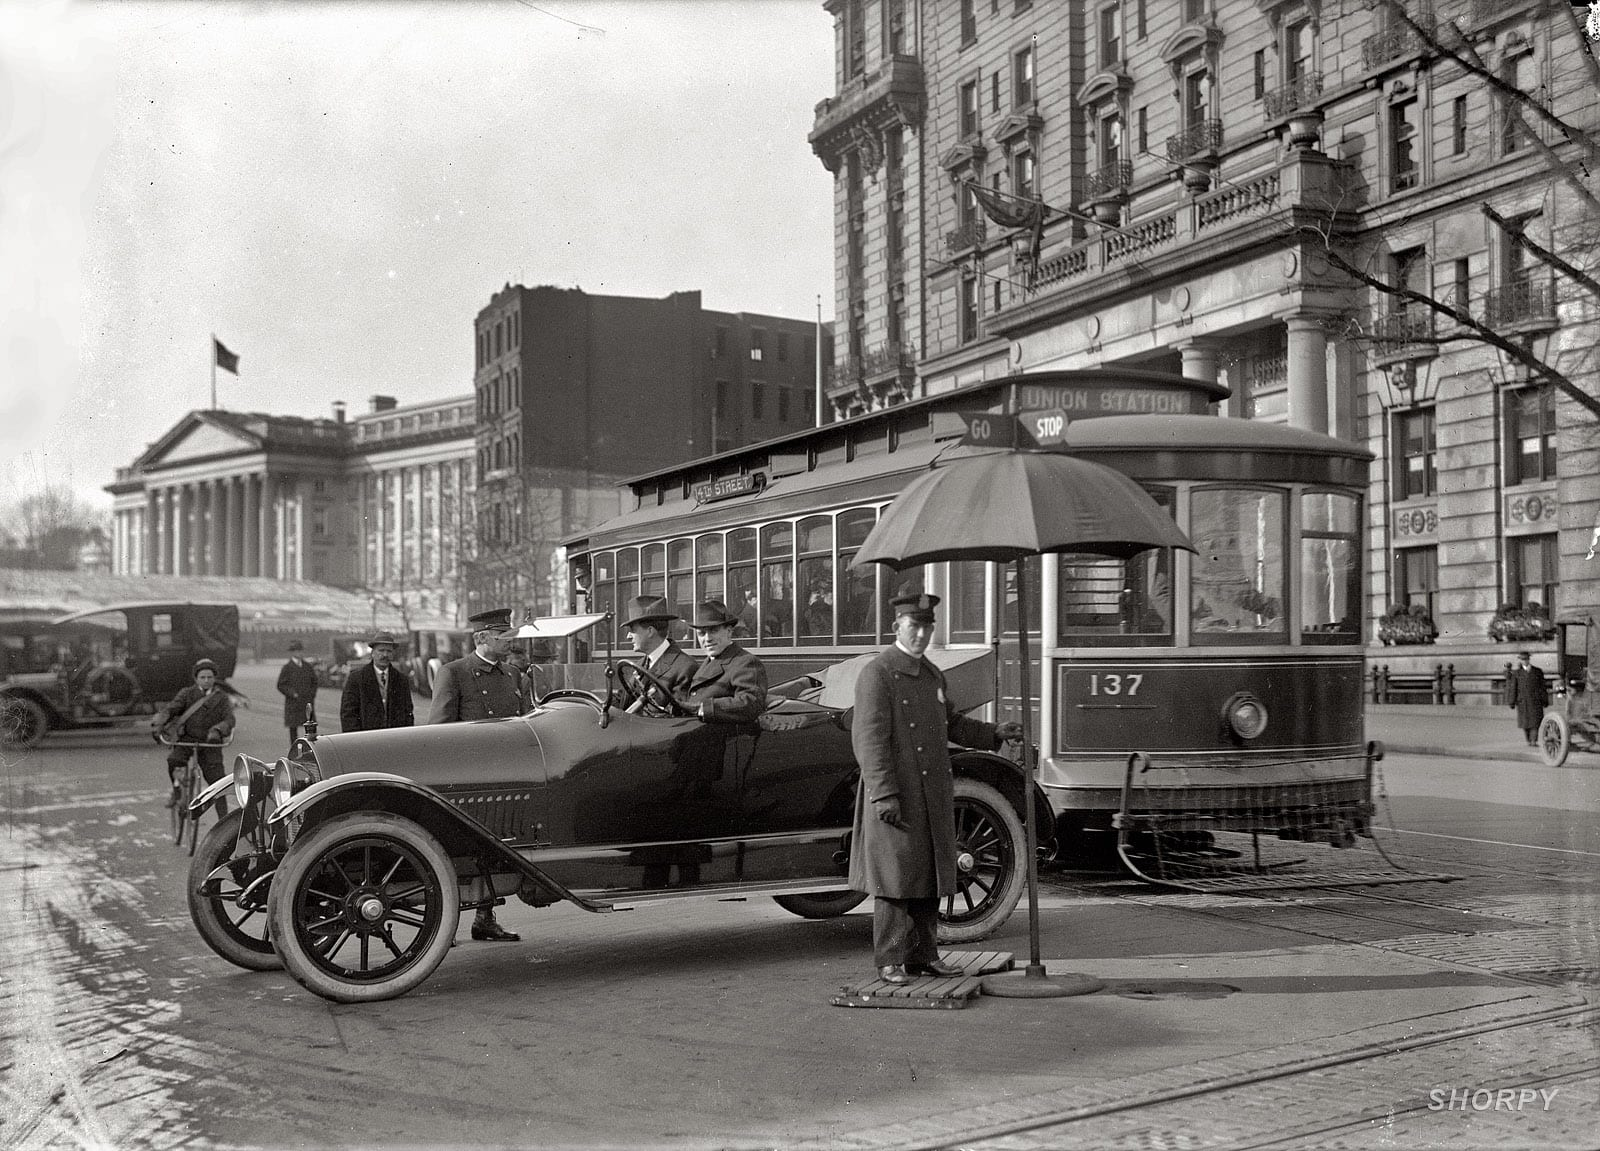 """District of Columbia, 1913. Traffic Stop and Go signs."" Traffic safety in Washington with the Treasury building at left. Note the pedestrian-catcher on the streetcar. Harris & Ewing Collection glass negative."